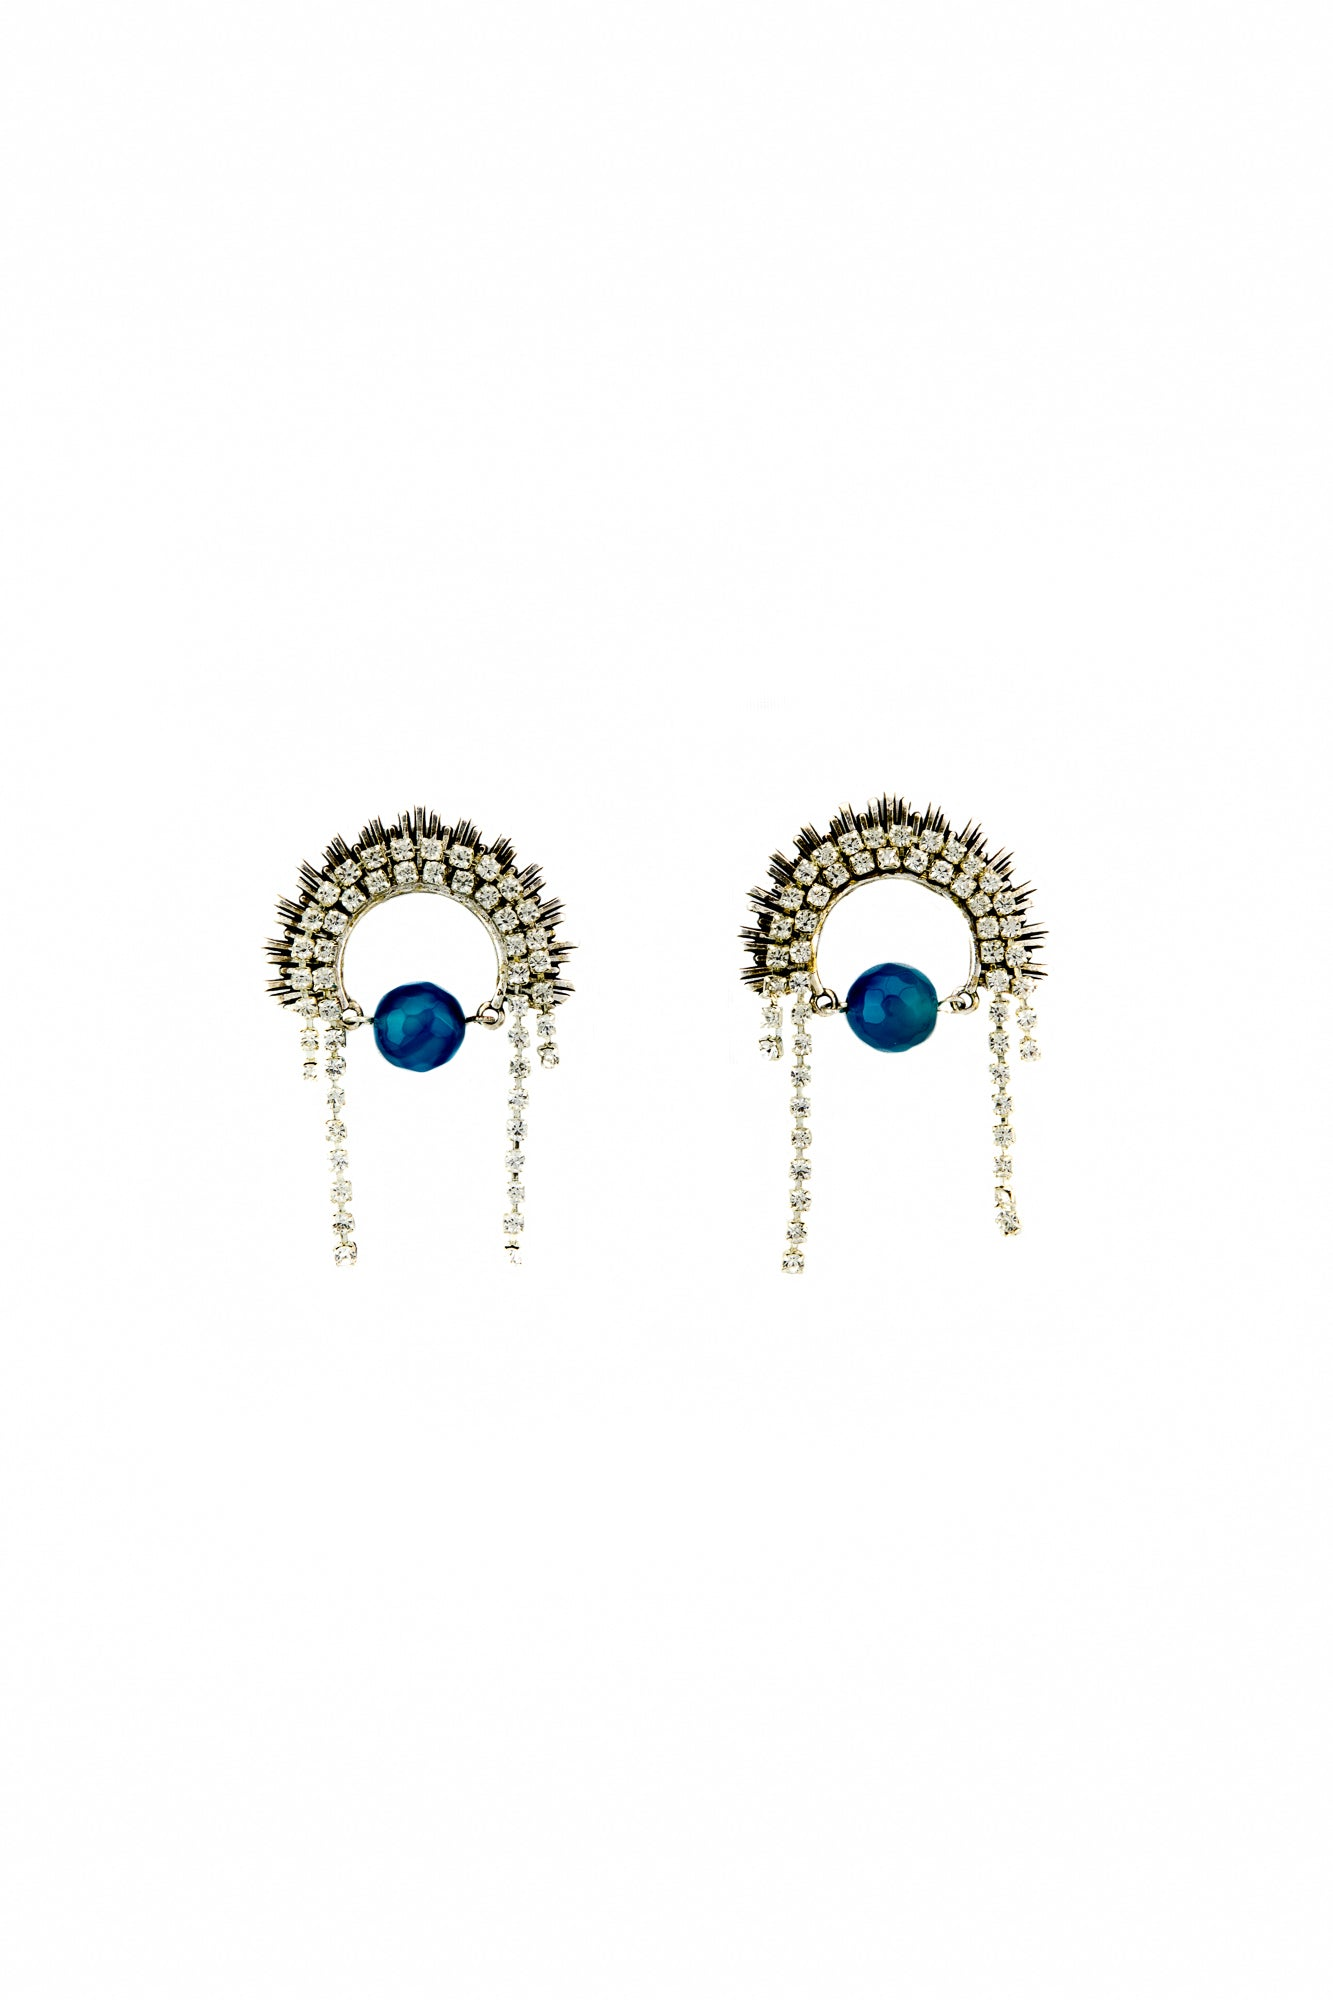 Rhinestone tiara earrings - Sofi Moukidou